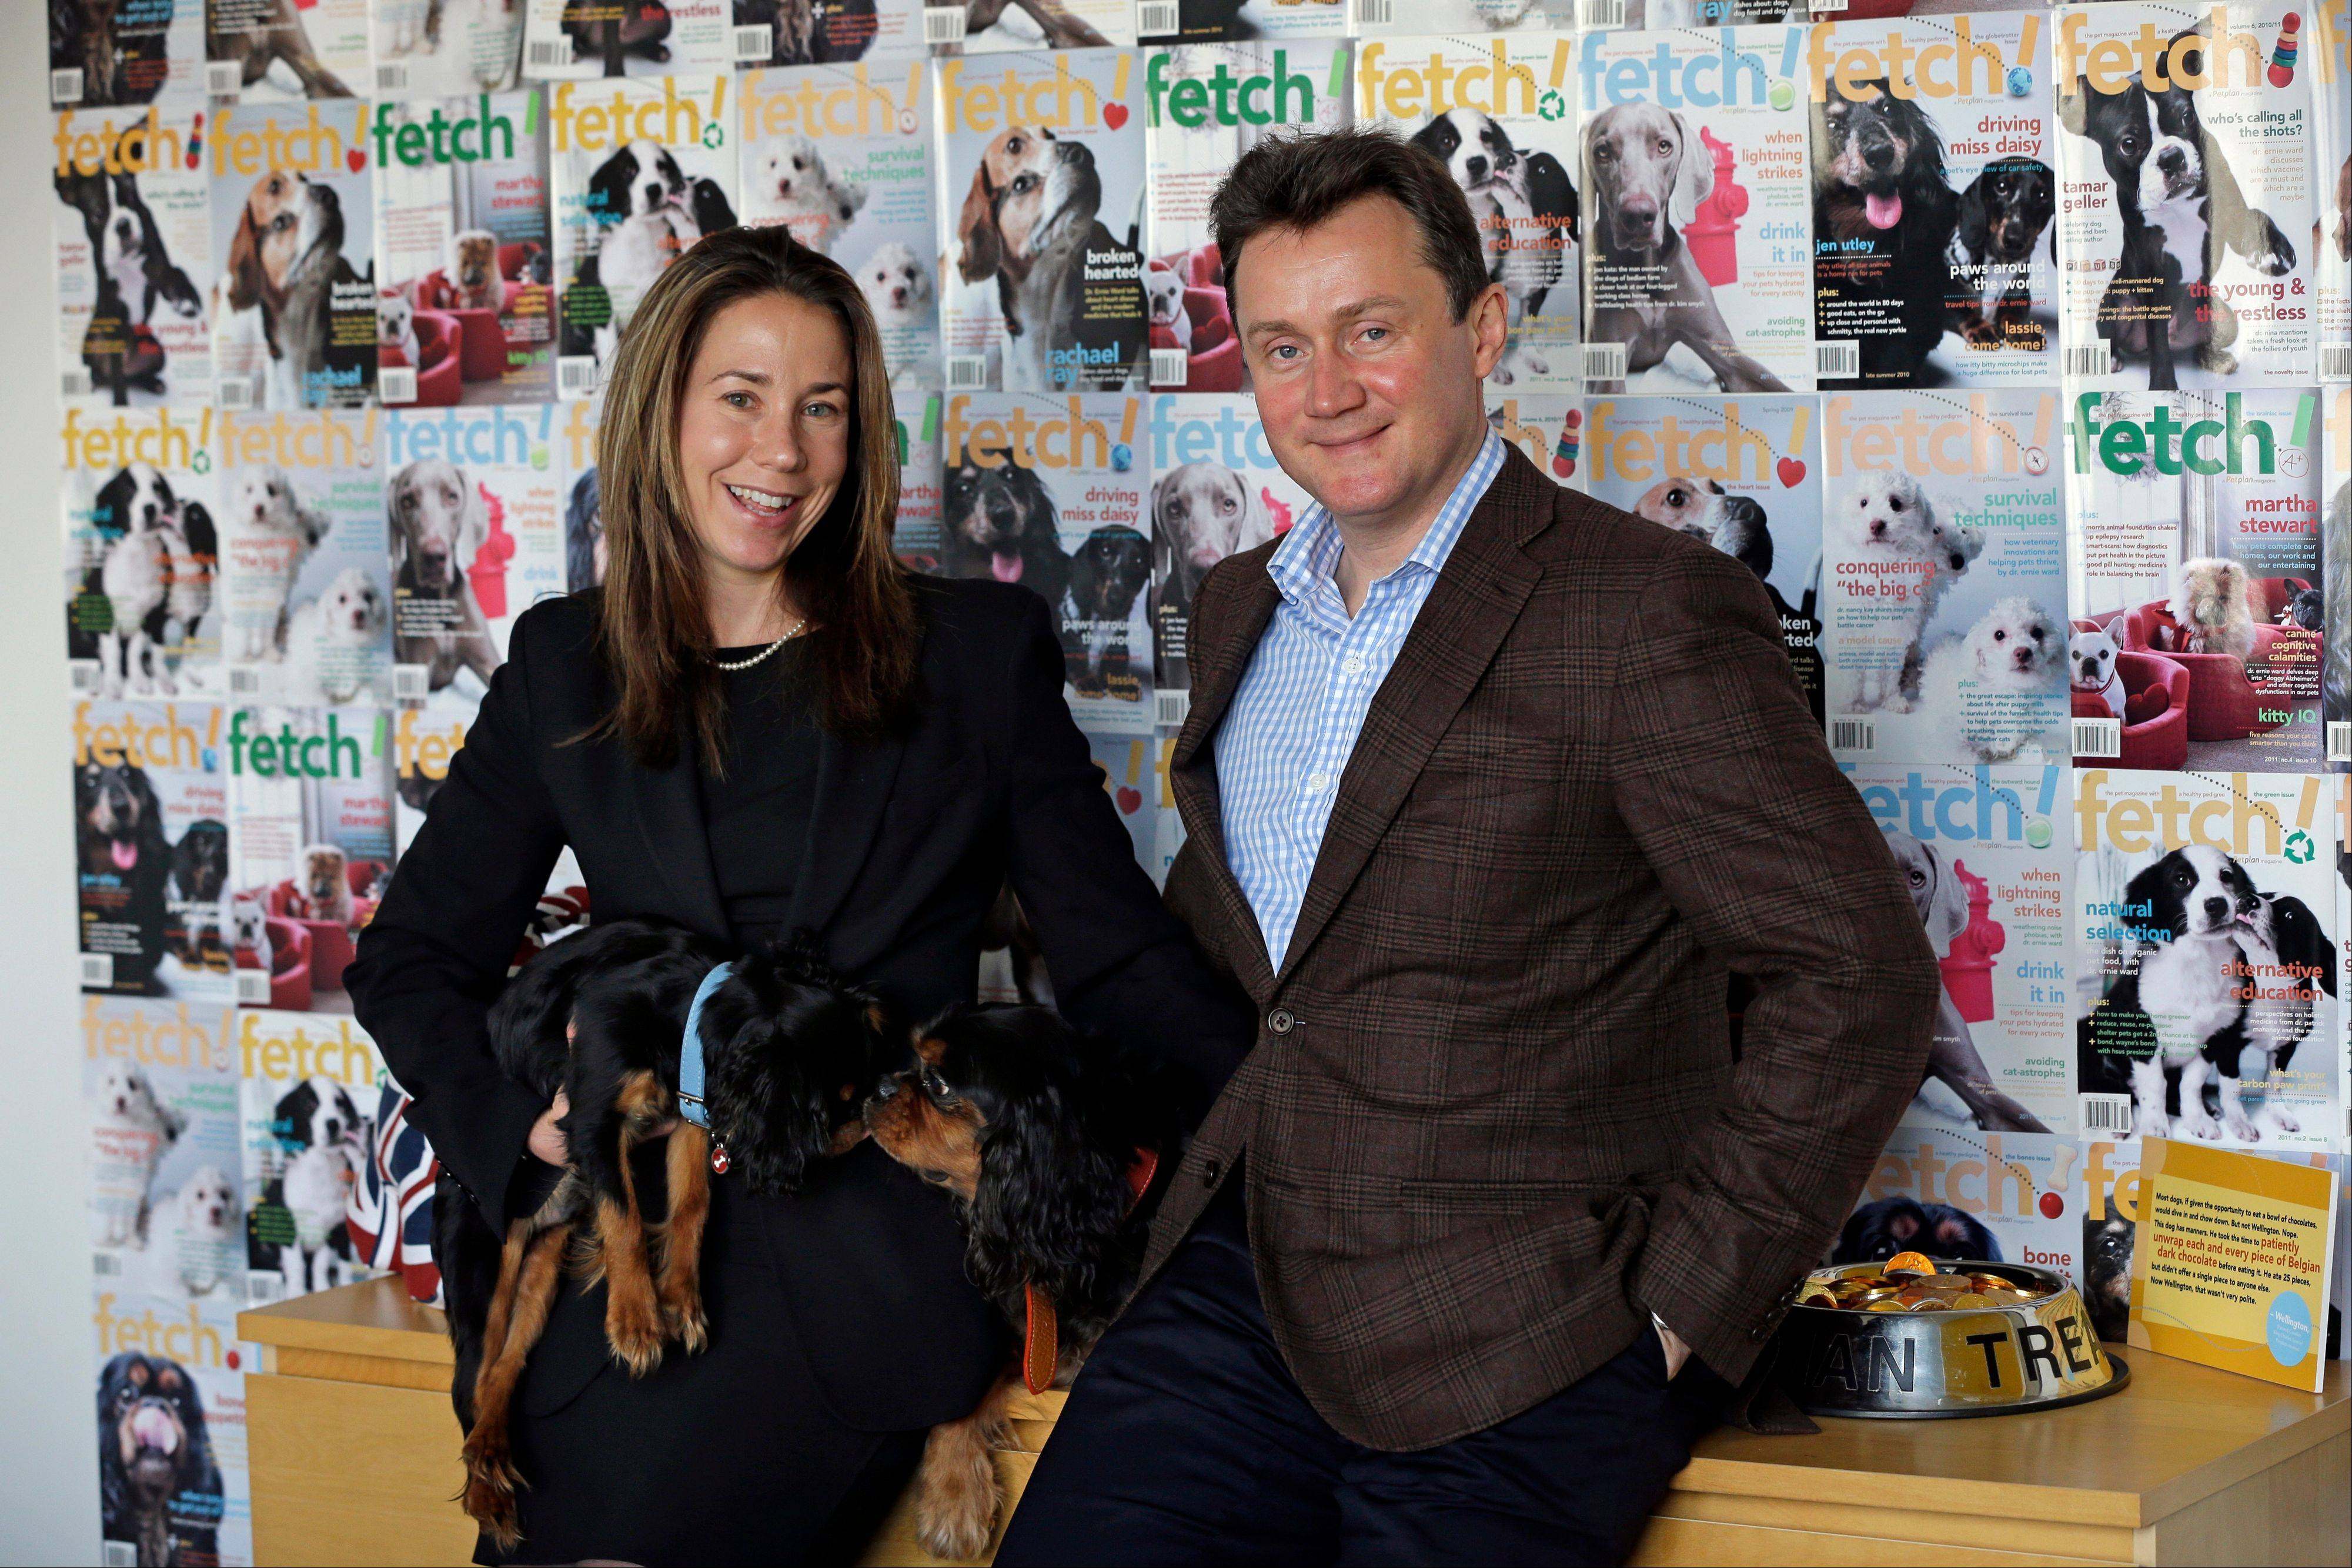 Chris and Natasha Ashton, owners of Petplan, a pet insurance company, pose for a portrait with their dogs, Montgomery, lower left, and Wellington, center, in Philadelphia. Marriage and other long-term relationships aren't easy. And running a small business is no picnic. Putting the two things together can make life complicated for the happiest of life partners. Still, millions of people run businesses with their significant other every day. It's not known how many couples own and run a business together, but the number runs into the millions.